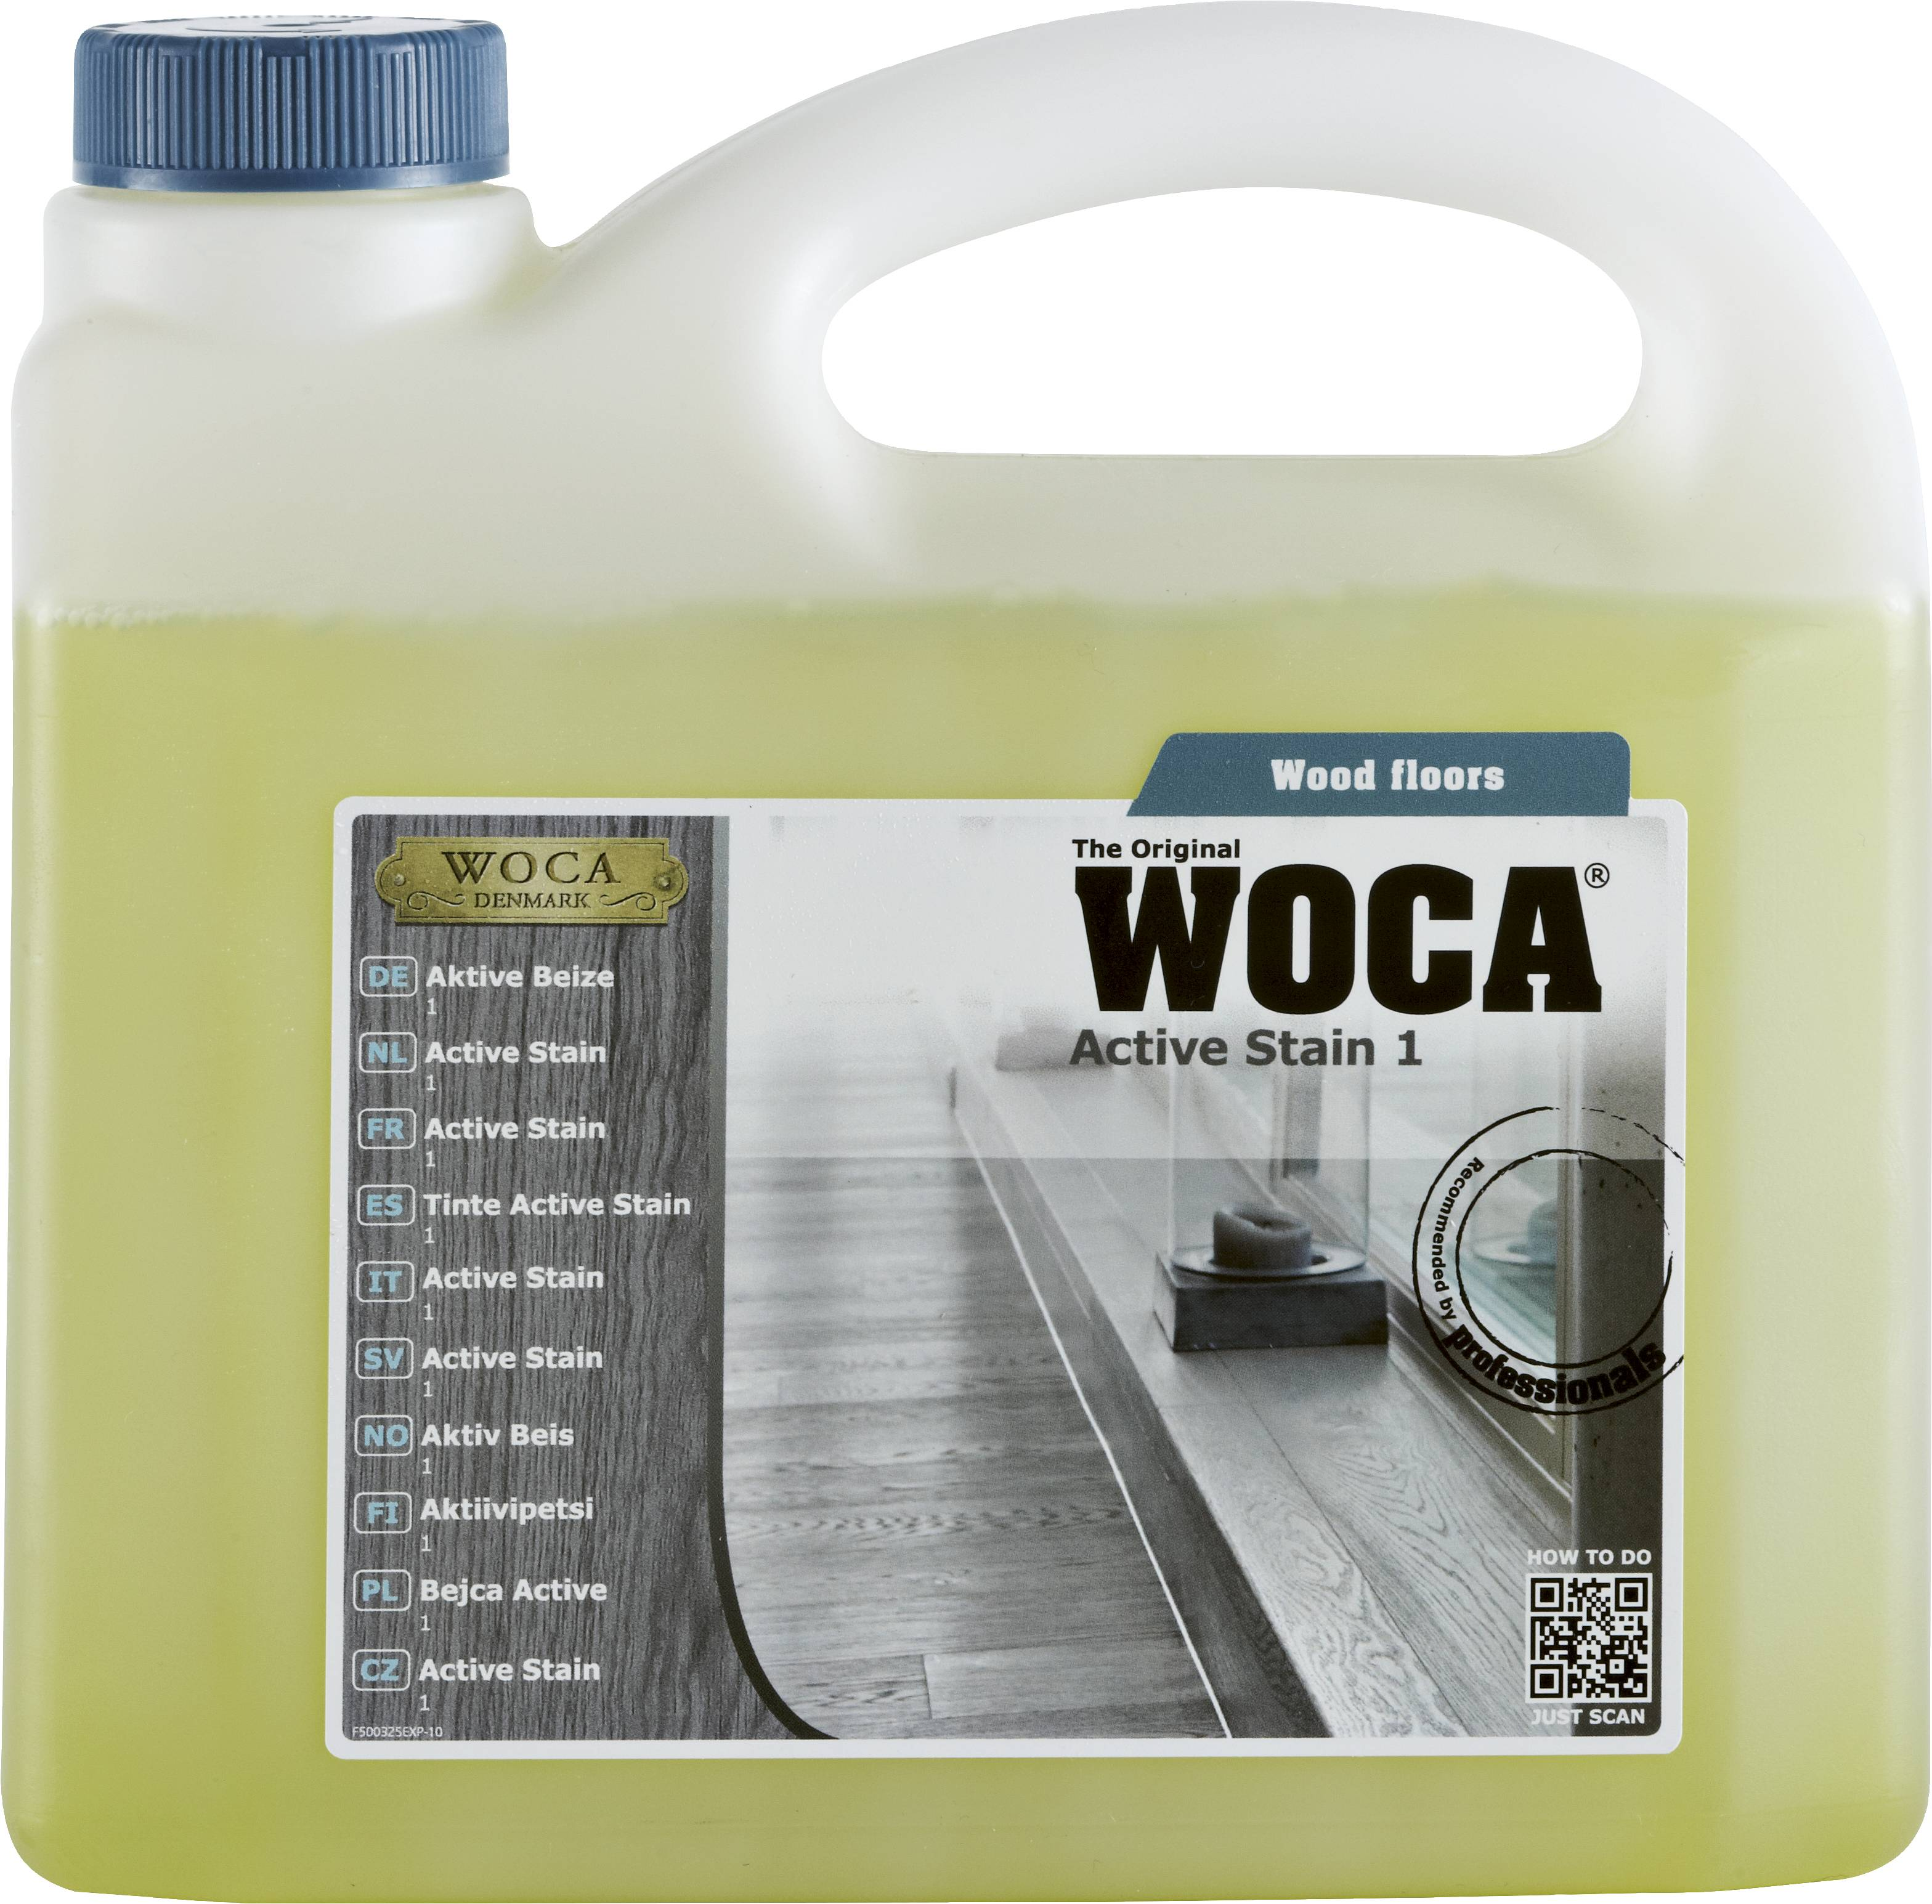 WOCA Active Stain